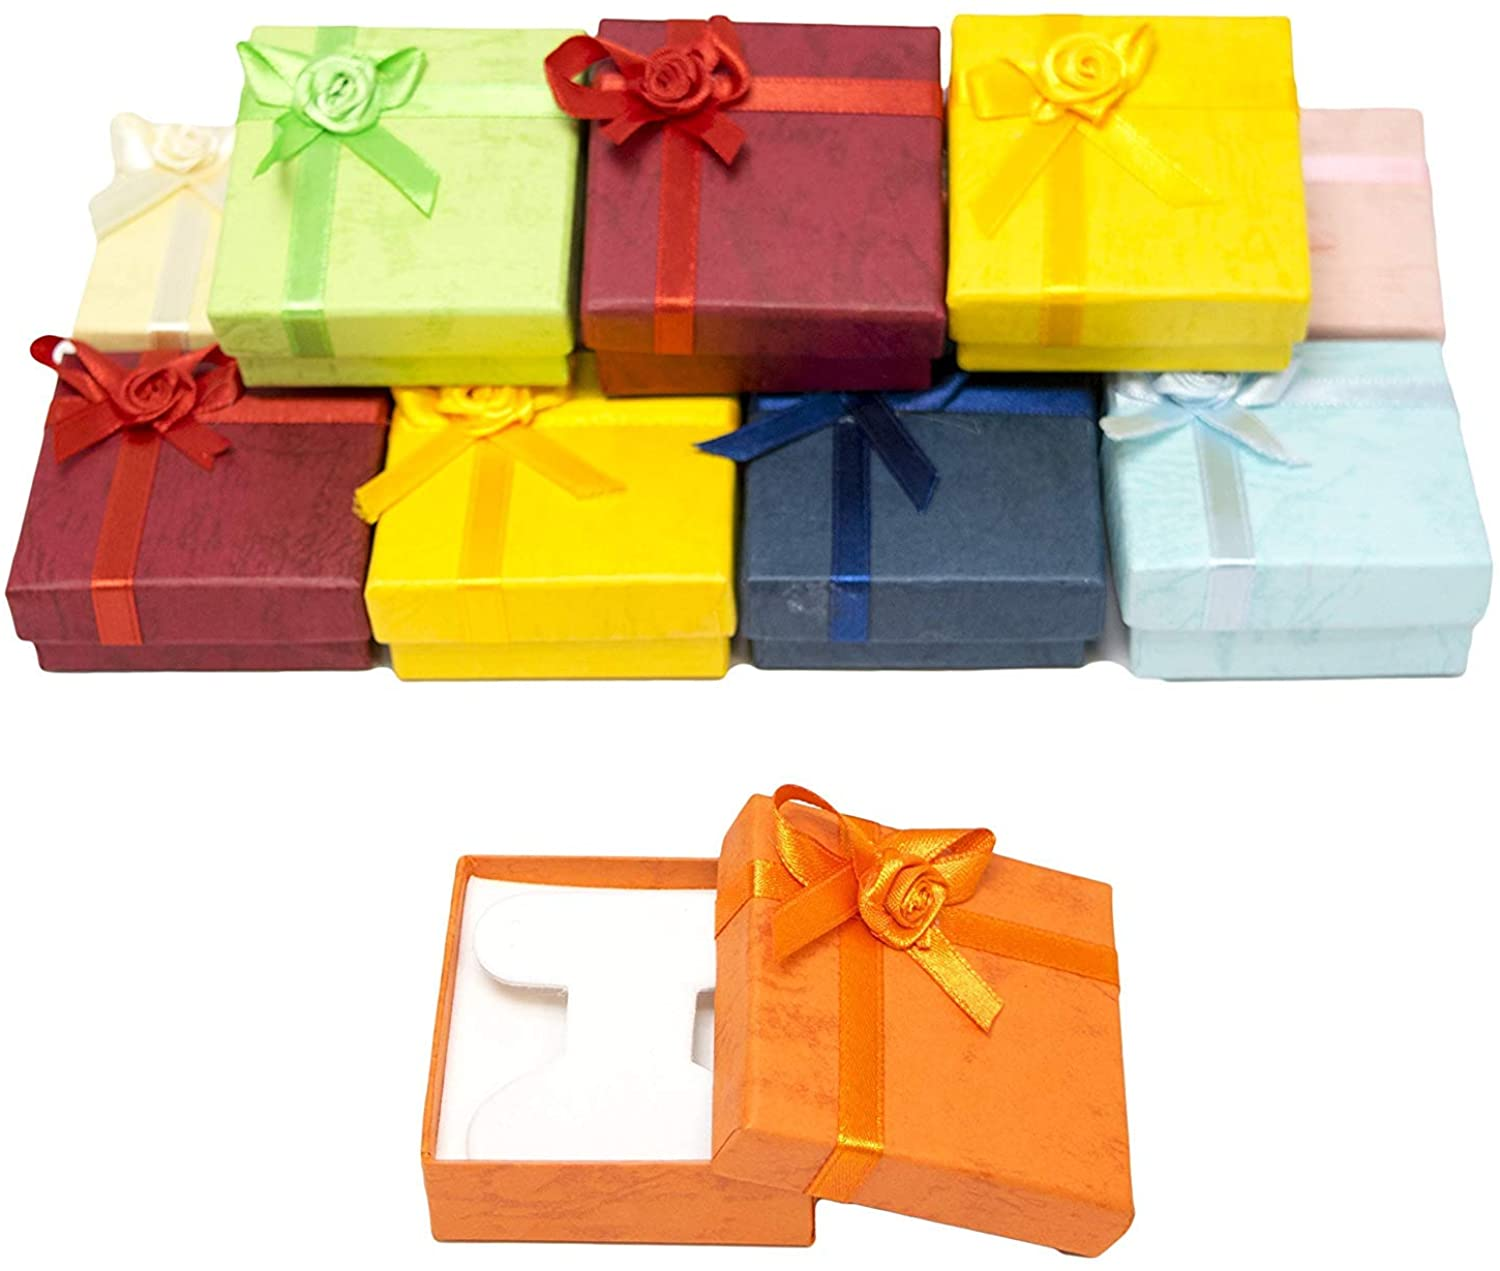 USA BEST SUPPLY Jewelry Earring Gift Boxes with Rosebug Bows in Assorted Colors 2.3X2.3X0.75 (Pack of 6)